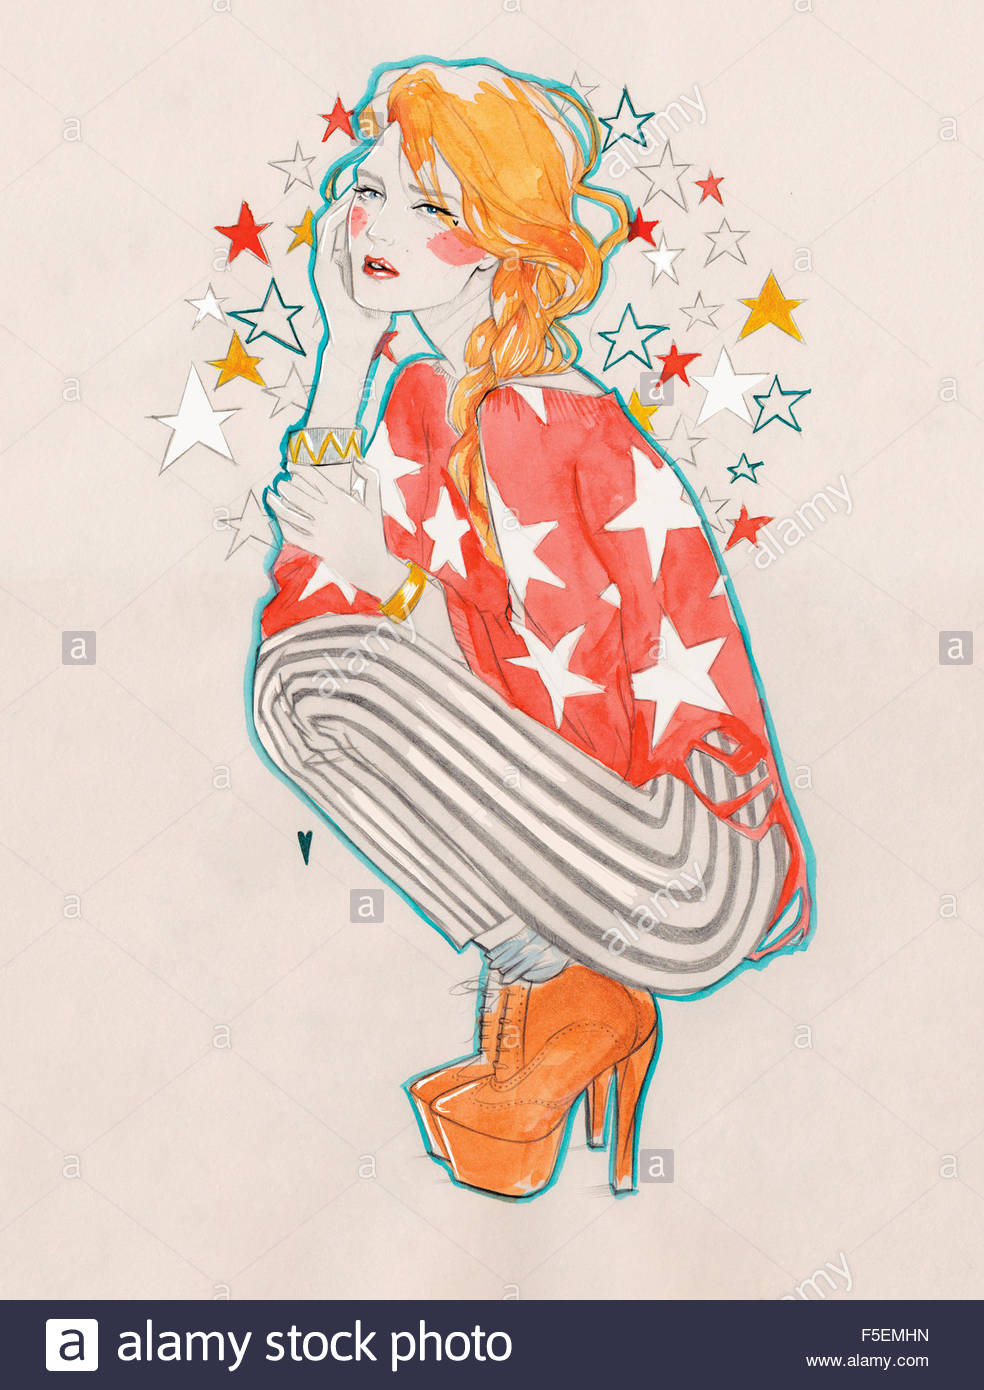 Serious young woman daydreaming with head in stars - Stock Image